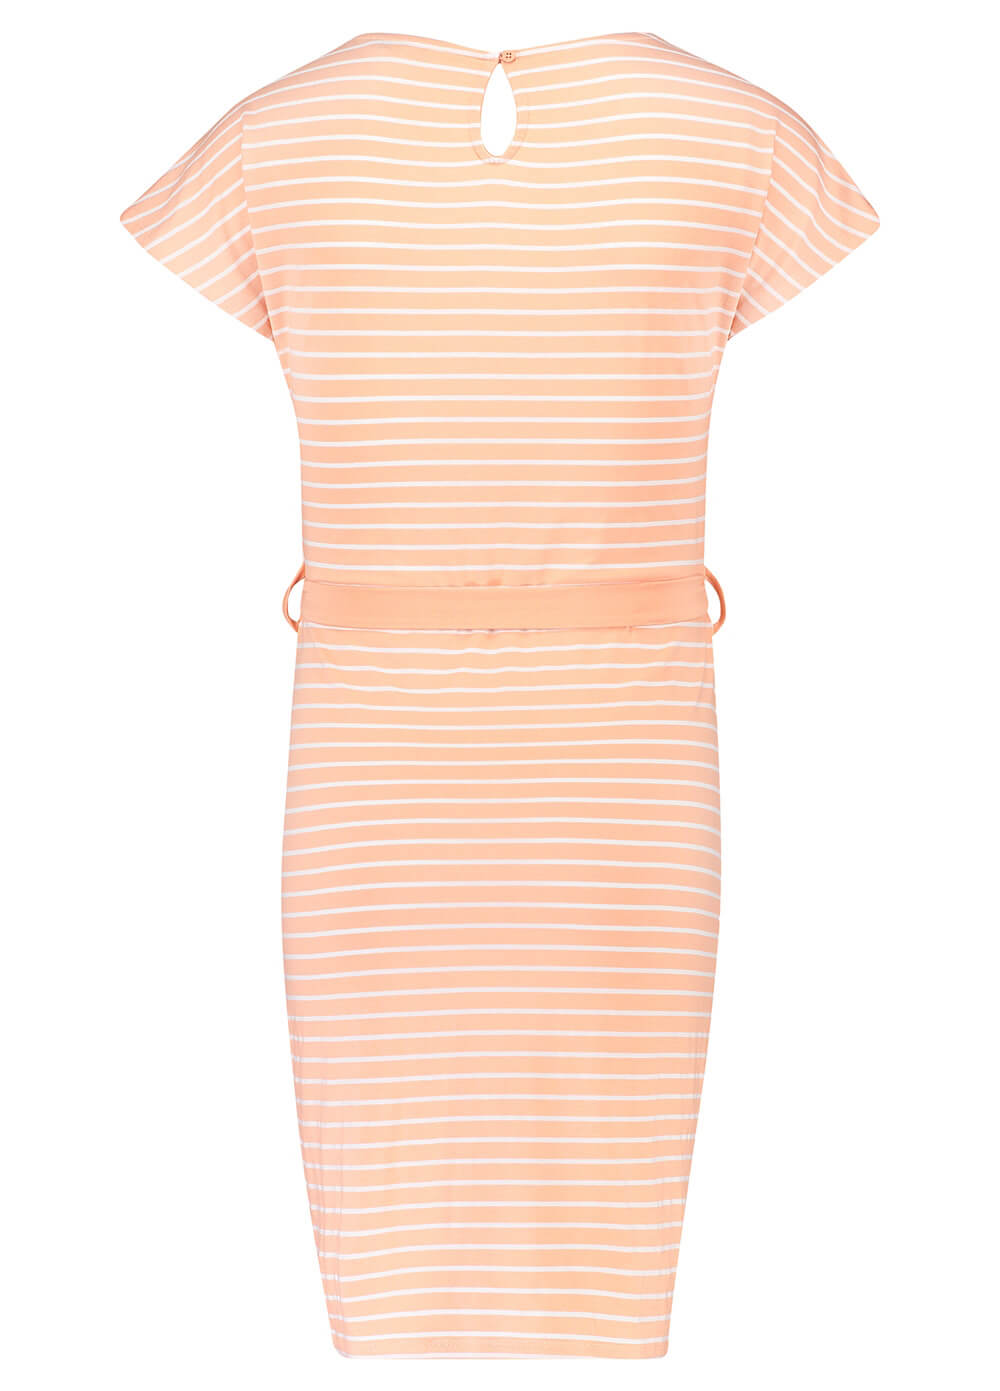 Daantje Maternity Dress in Peach Stripes by Noppies